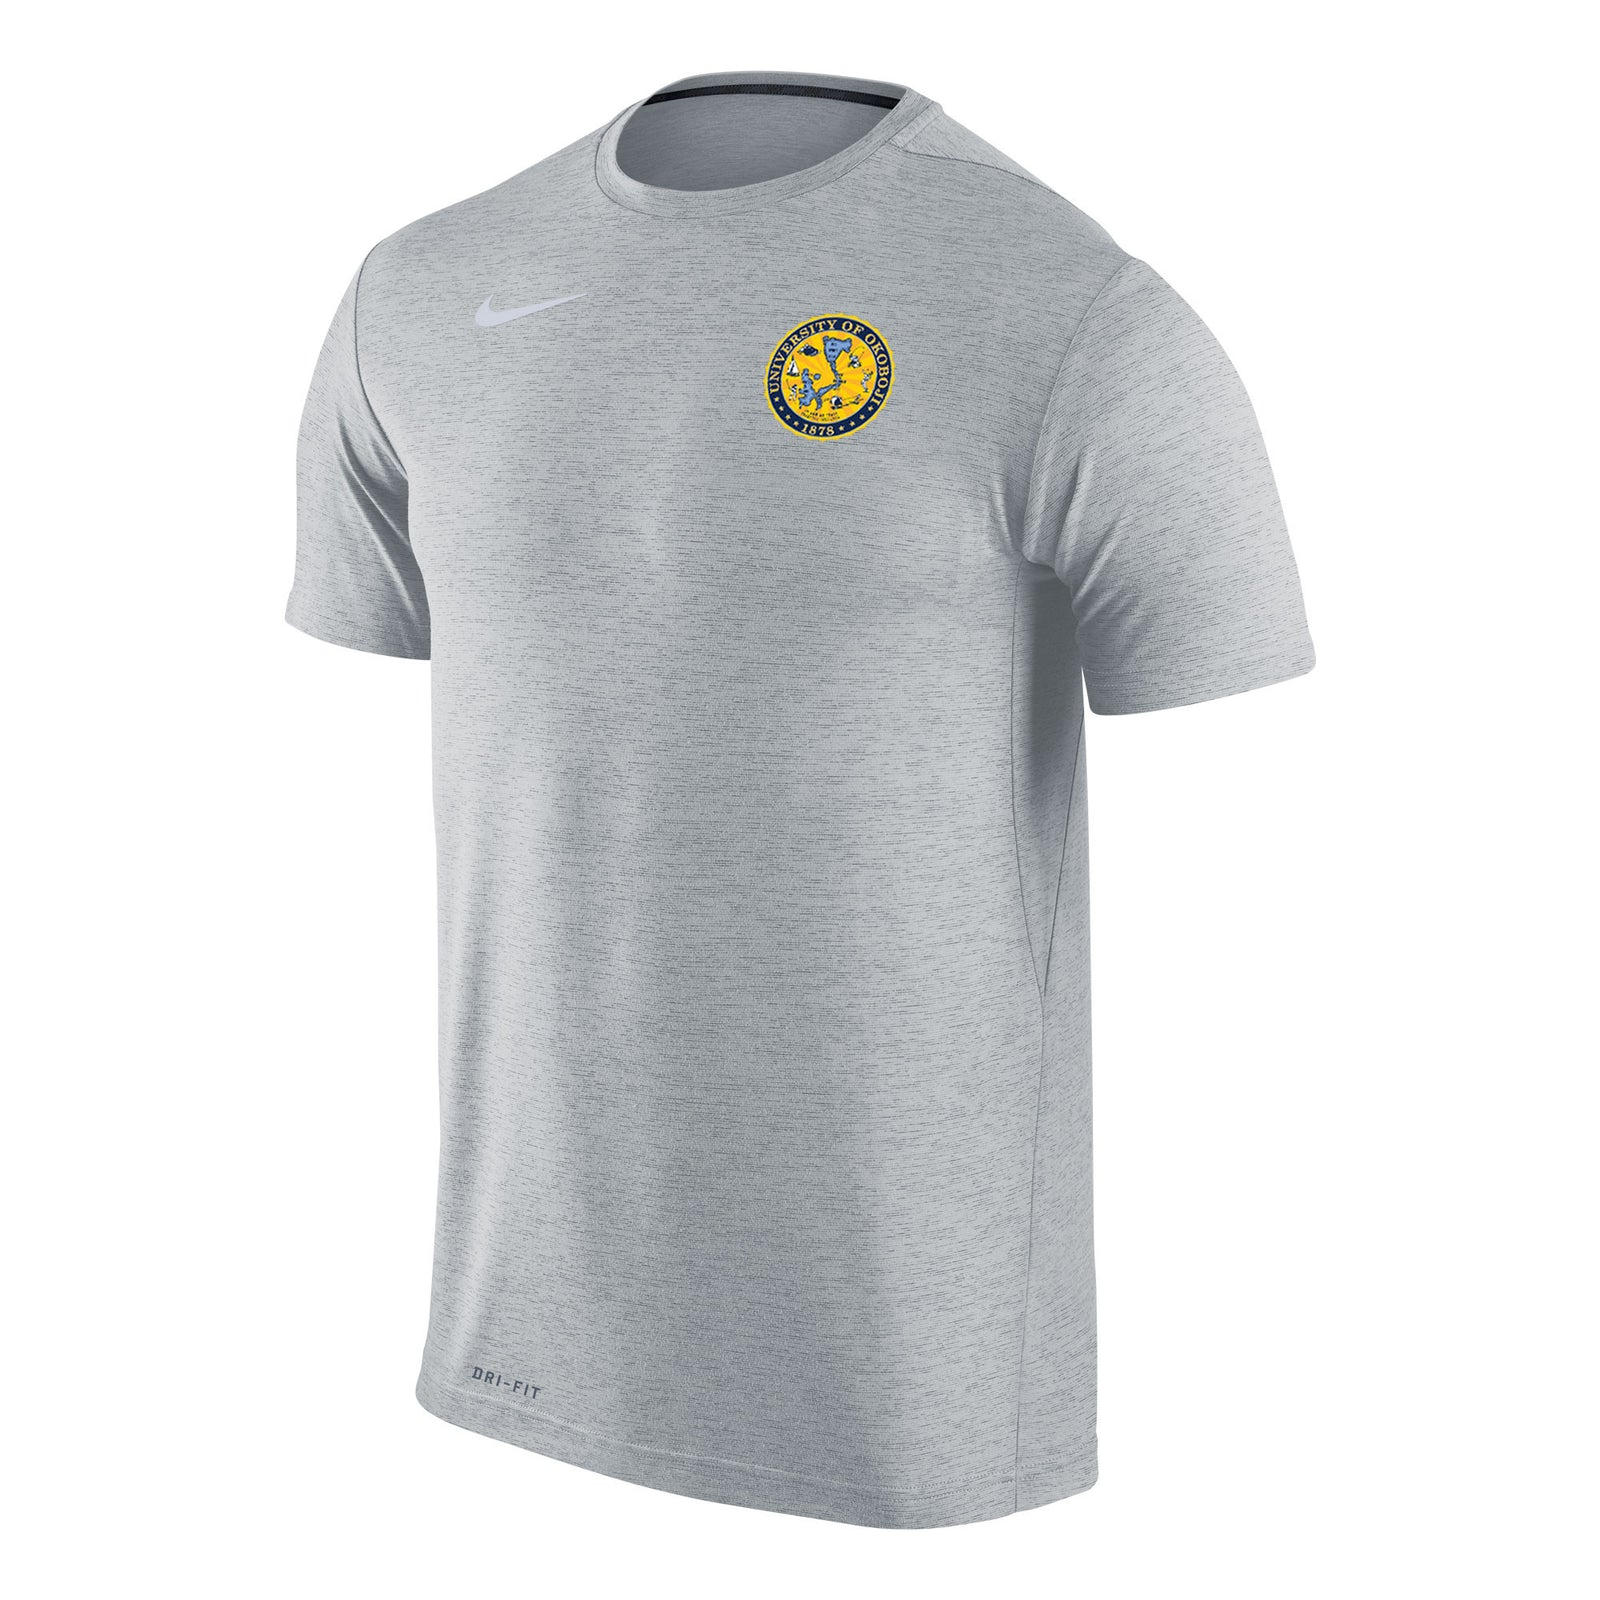 8bed7057 Men's Nike Dri-FIT Touch Short Sleeve Tee - Wolf Grey Heather